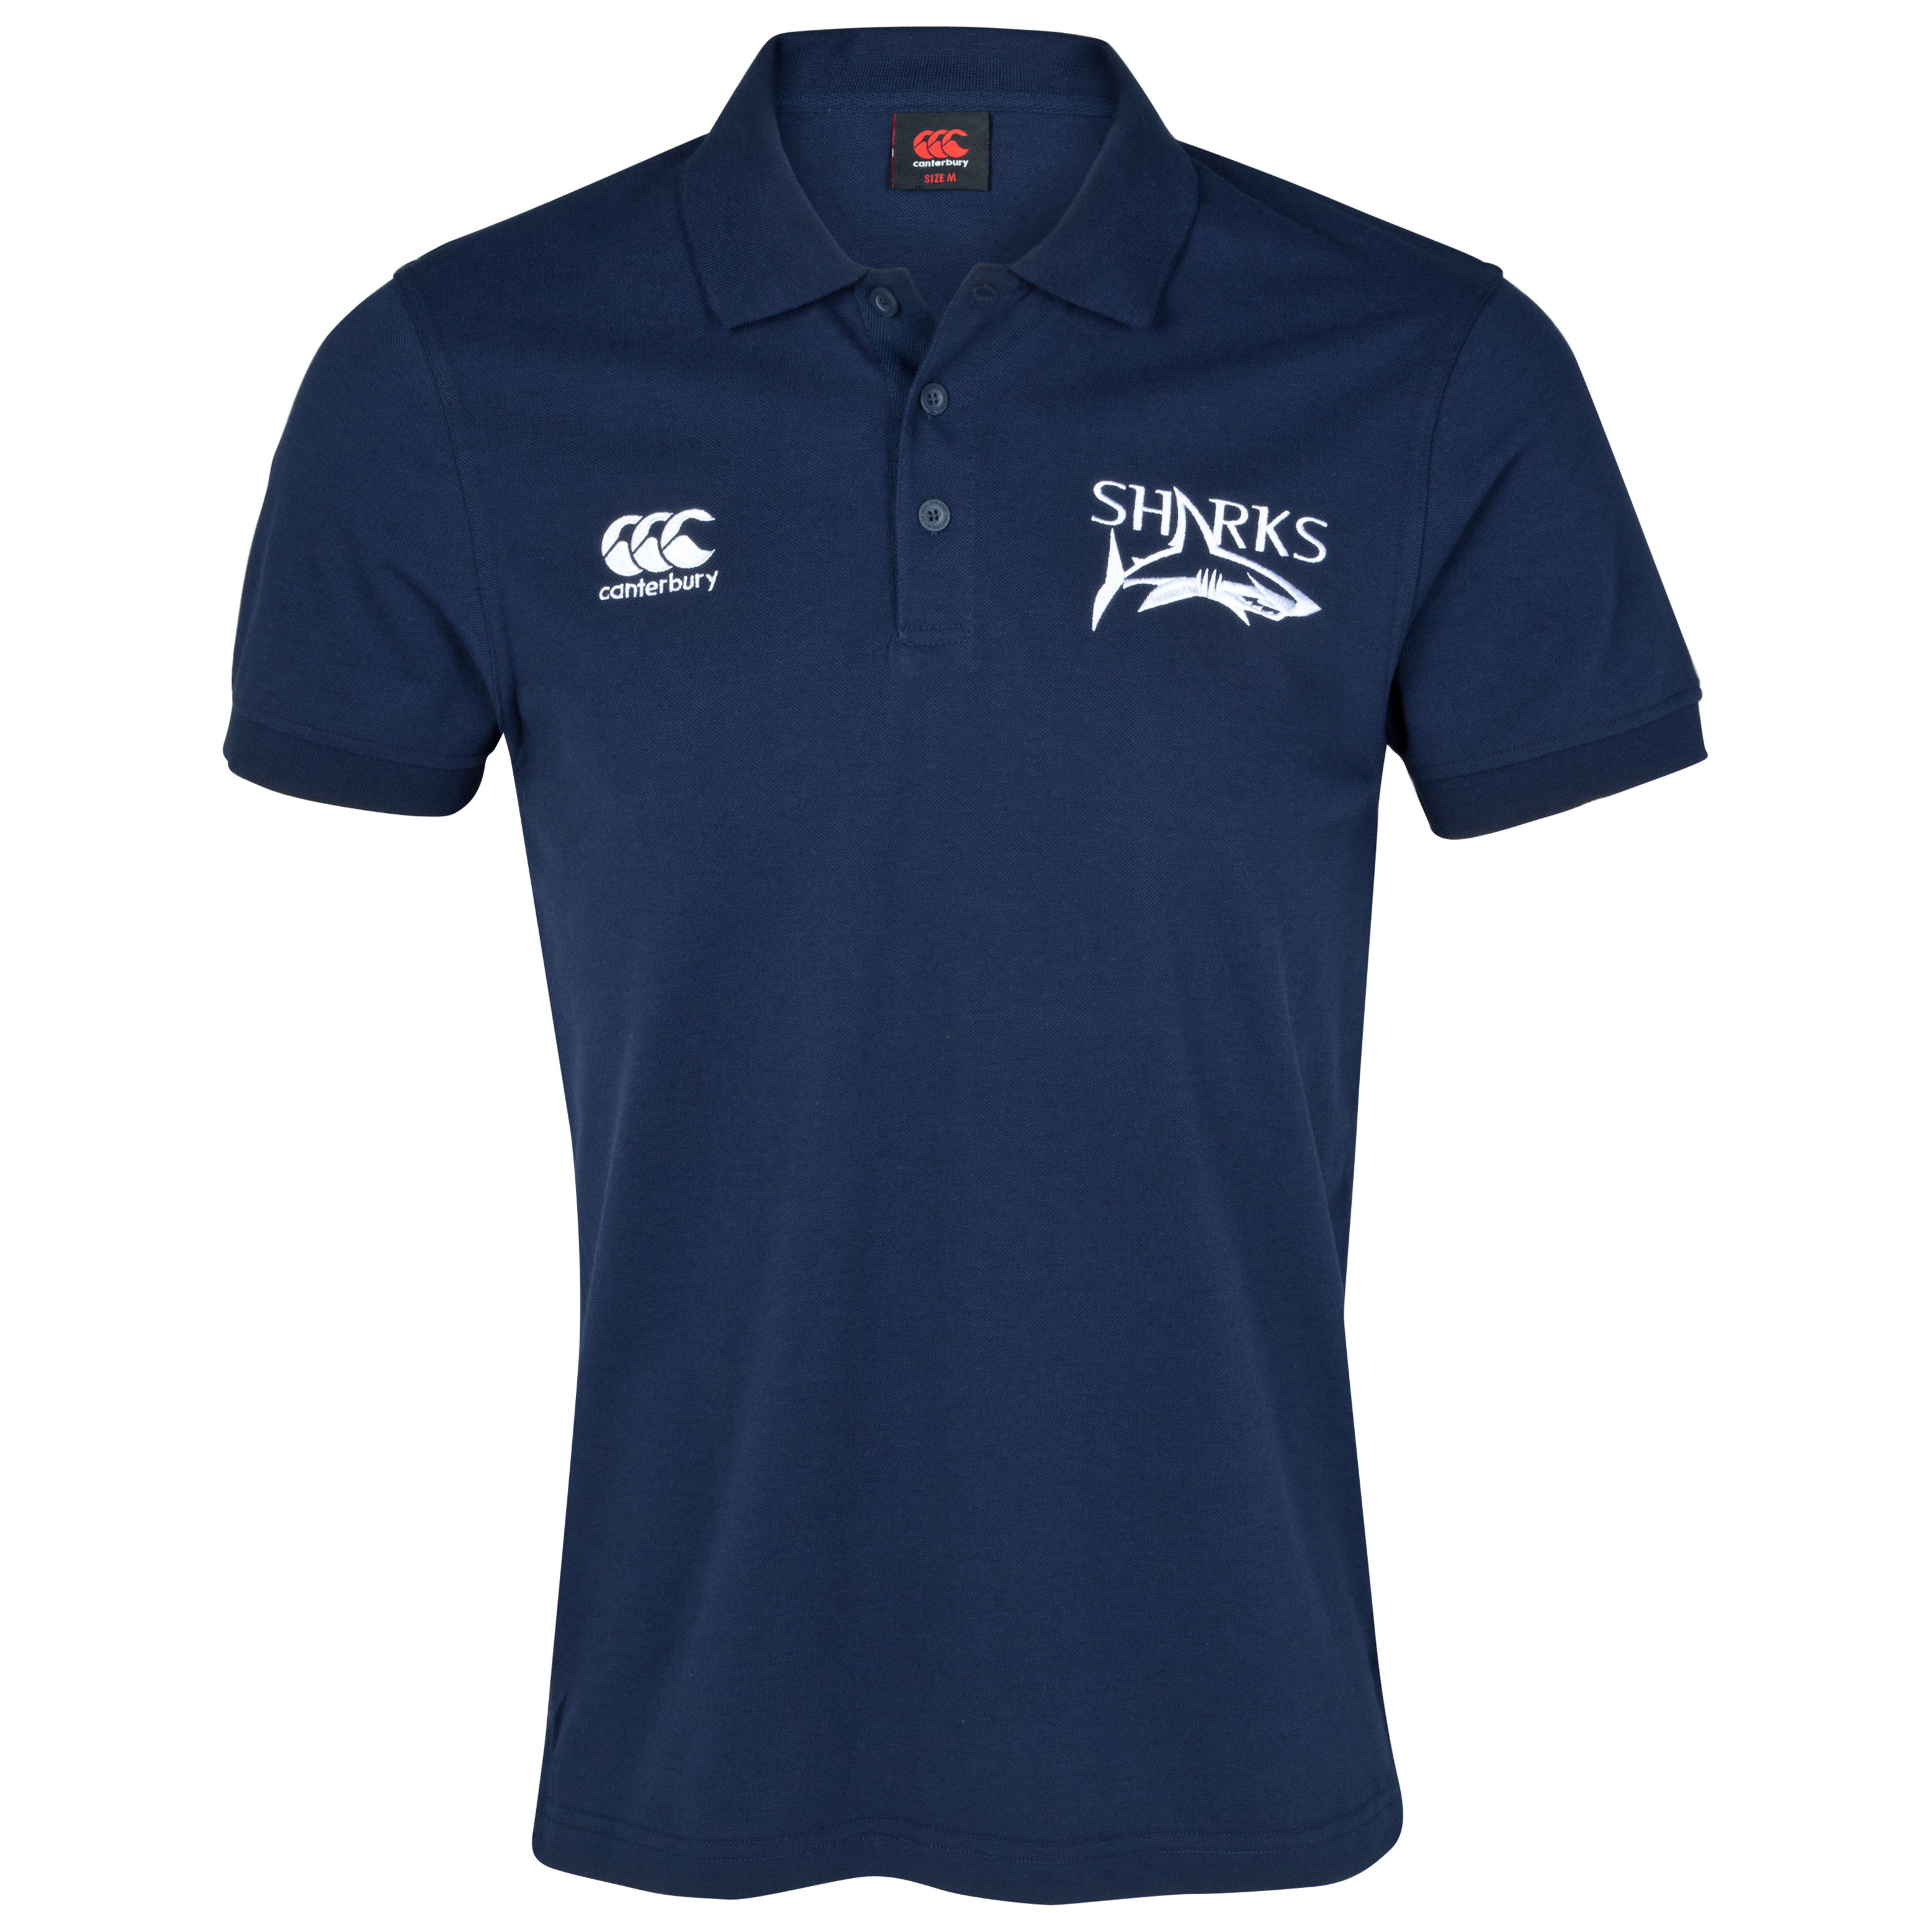 Sale Sharks Cotton Pique Polo - Navy